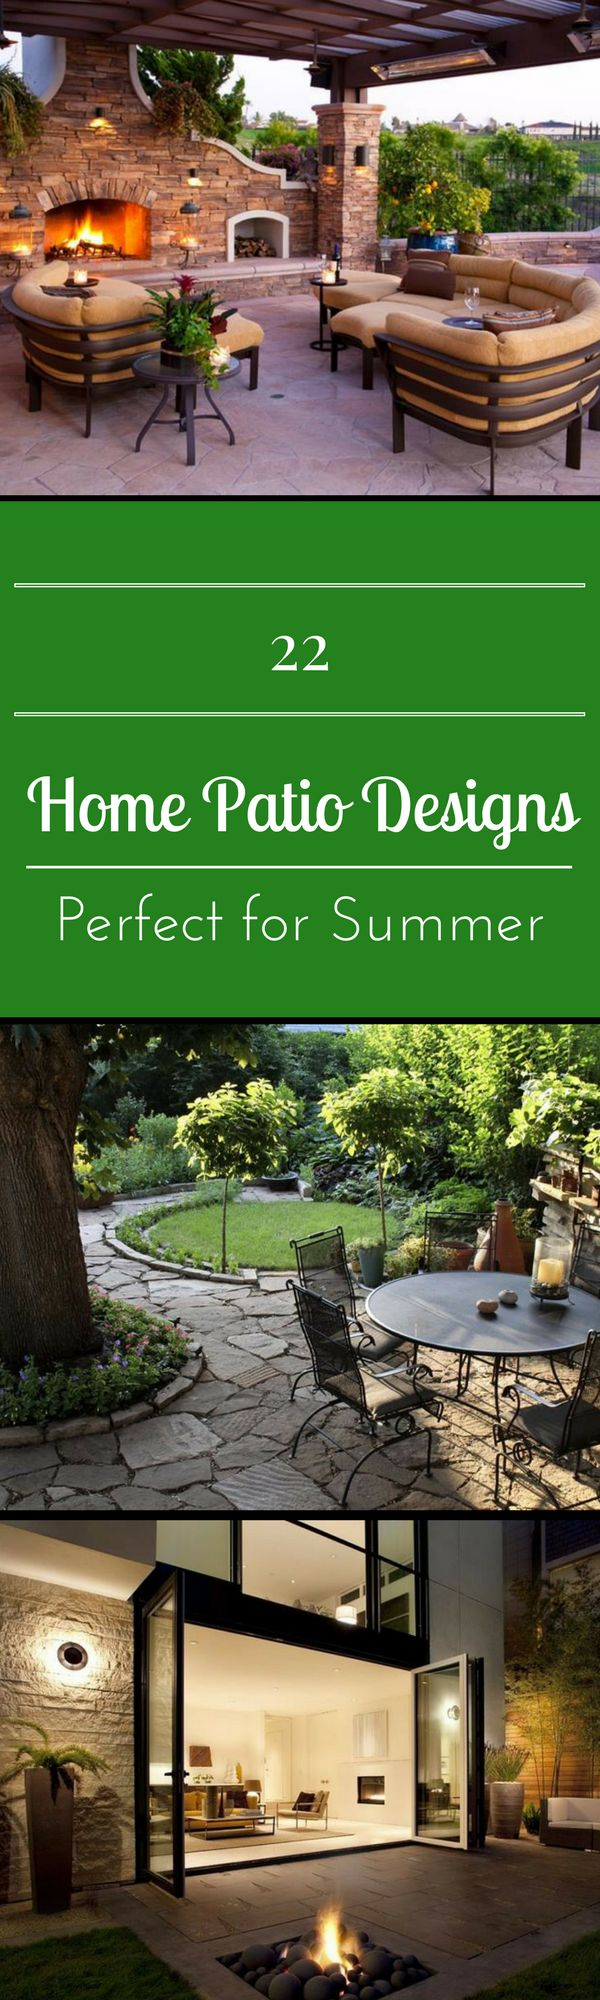 22 Home Patio Designs Perfect For Summer